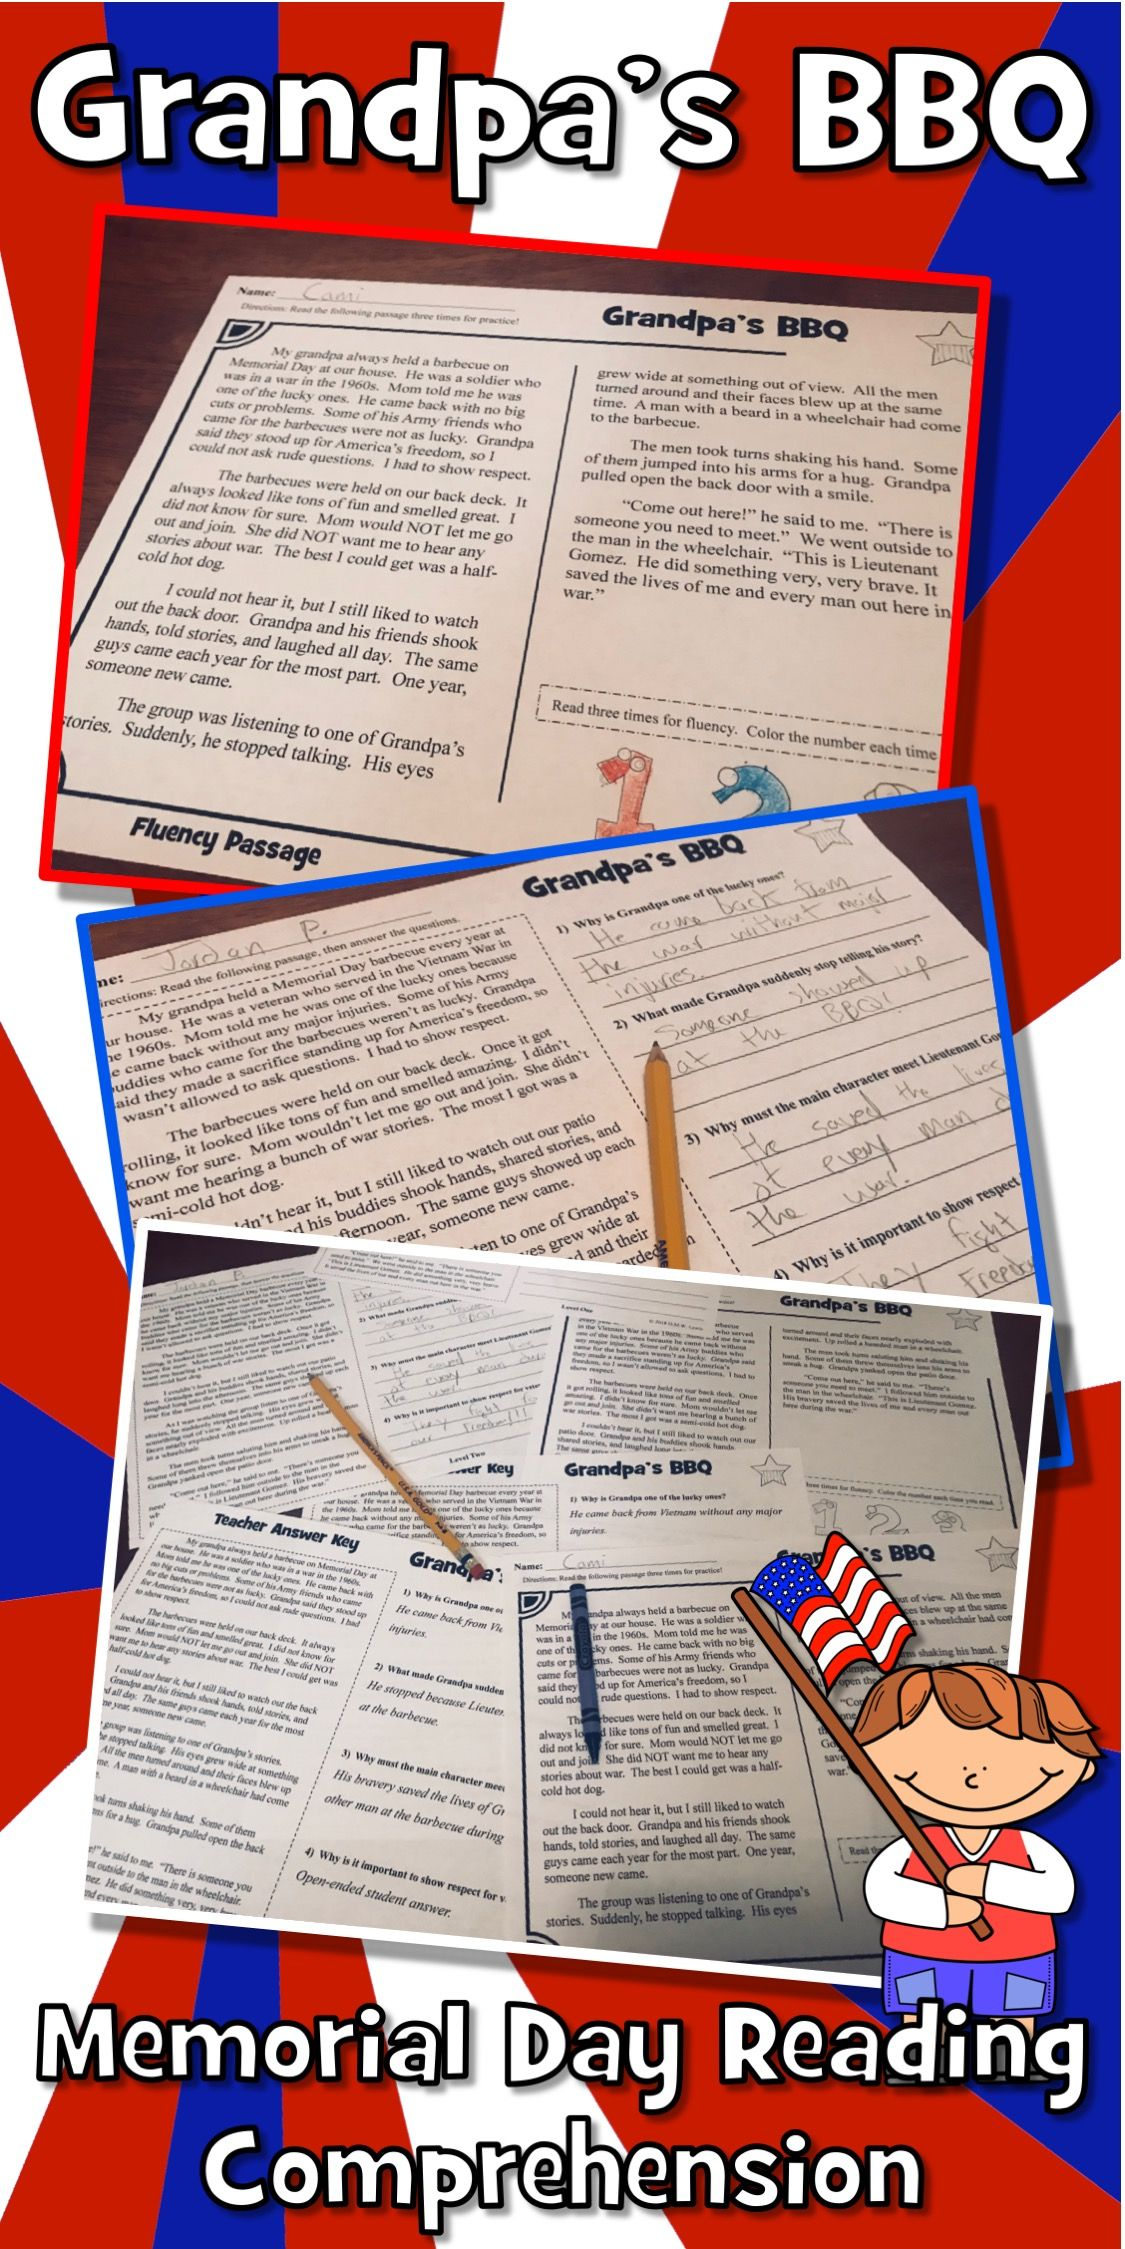 Memorial Day Reading Comprehension Passage